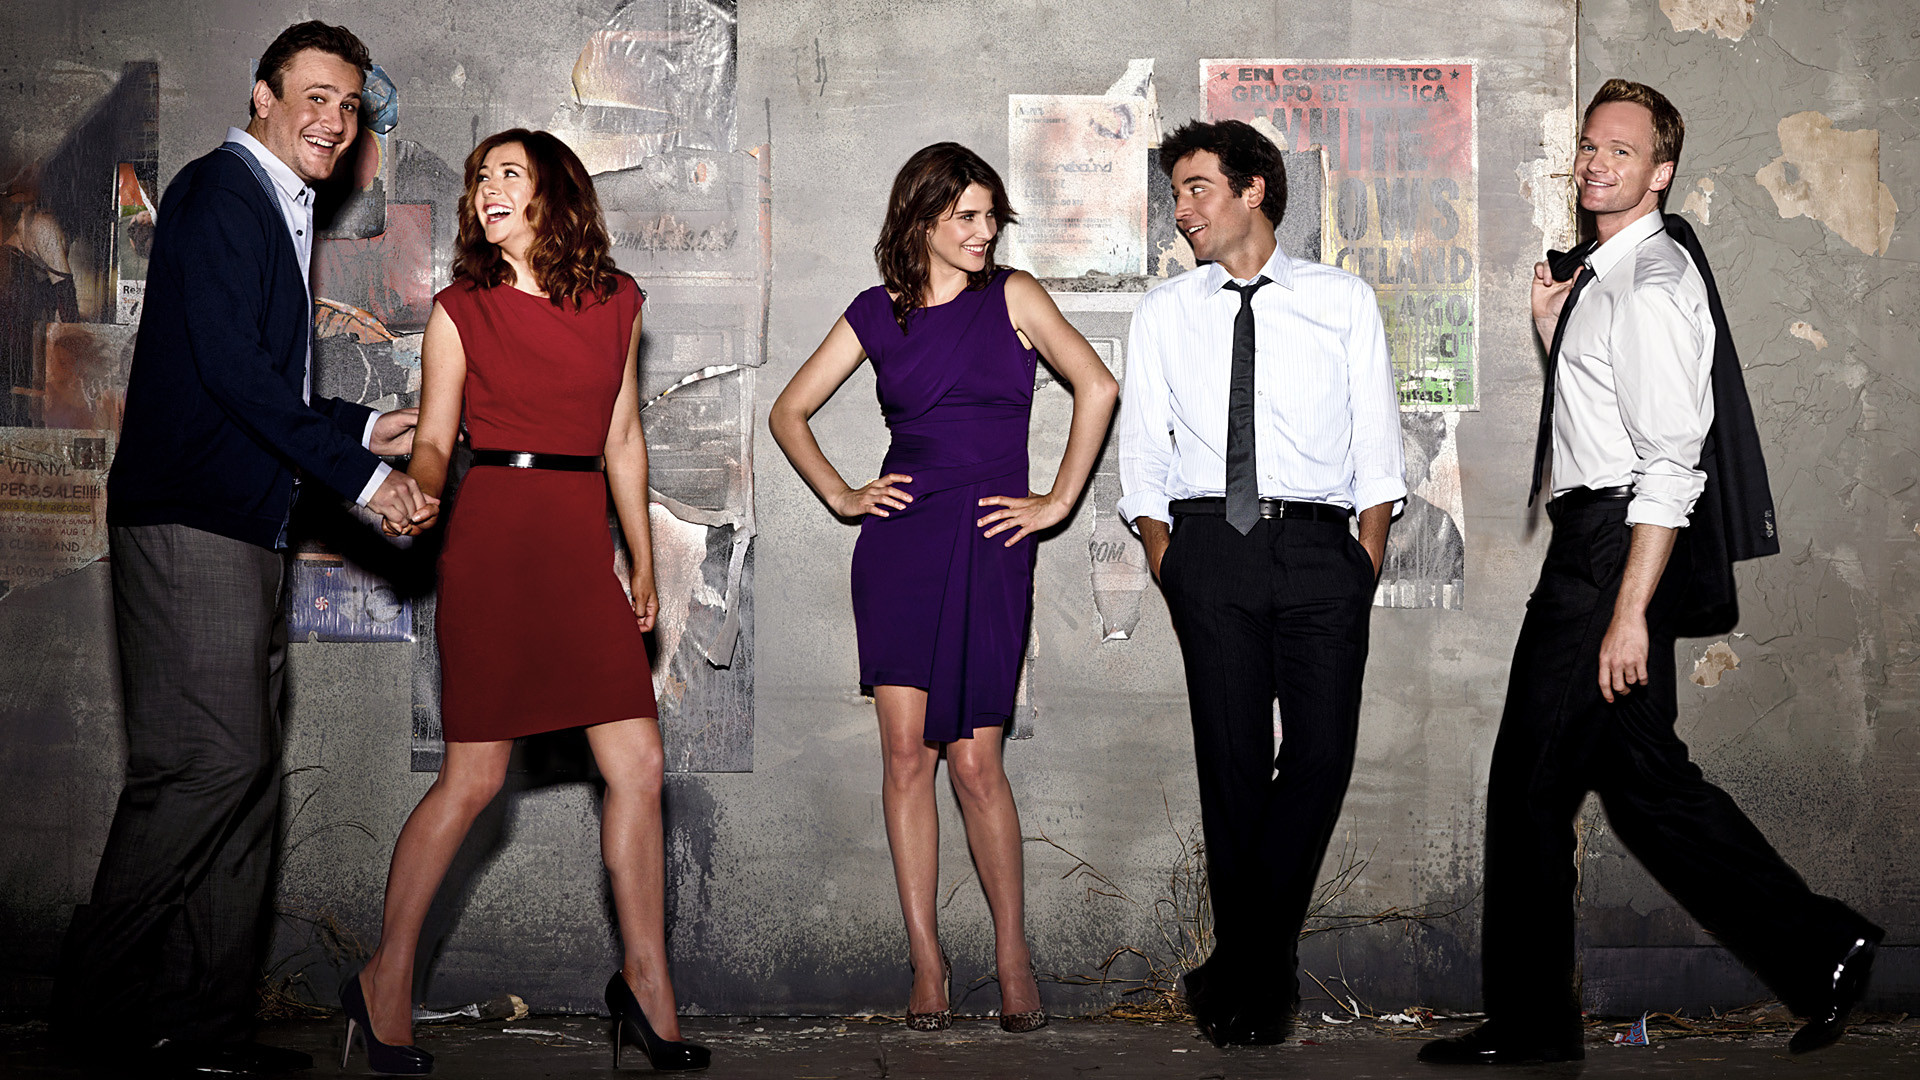 A How I Met Your Mother Cast Member Hated the Ending Too